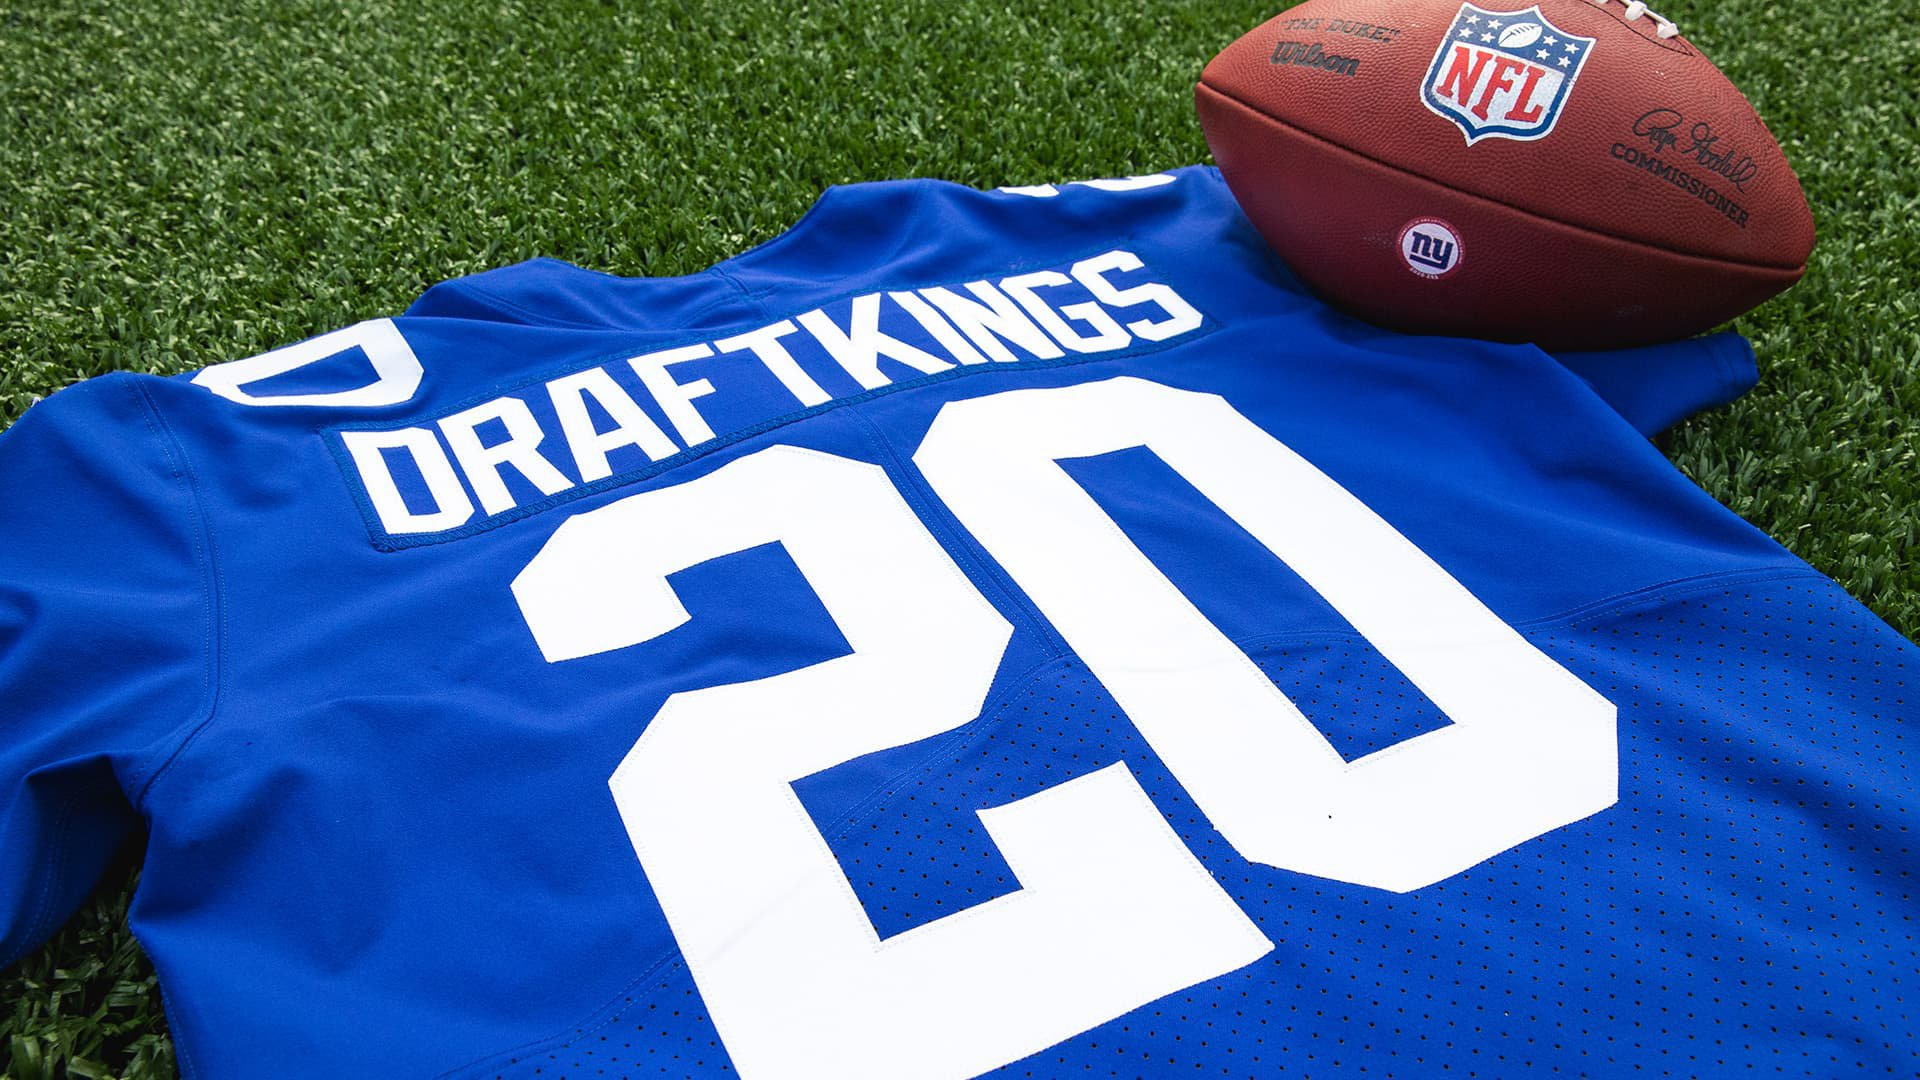 Better late than never: The NFL partners with Caesars, DraftKings and FanDuel